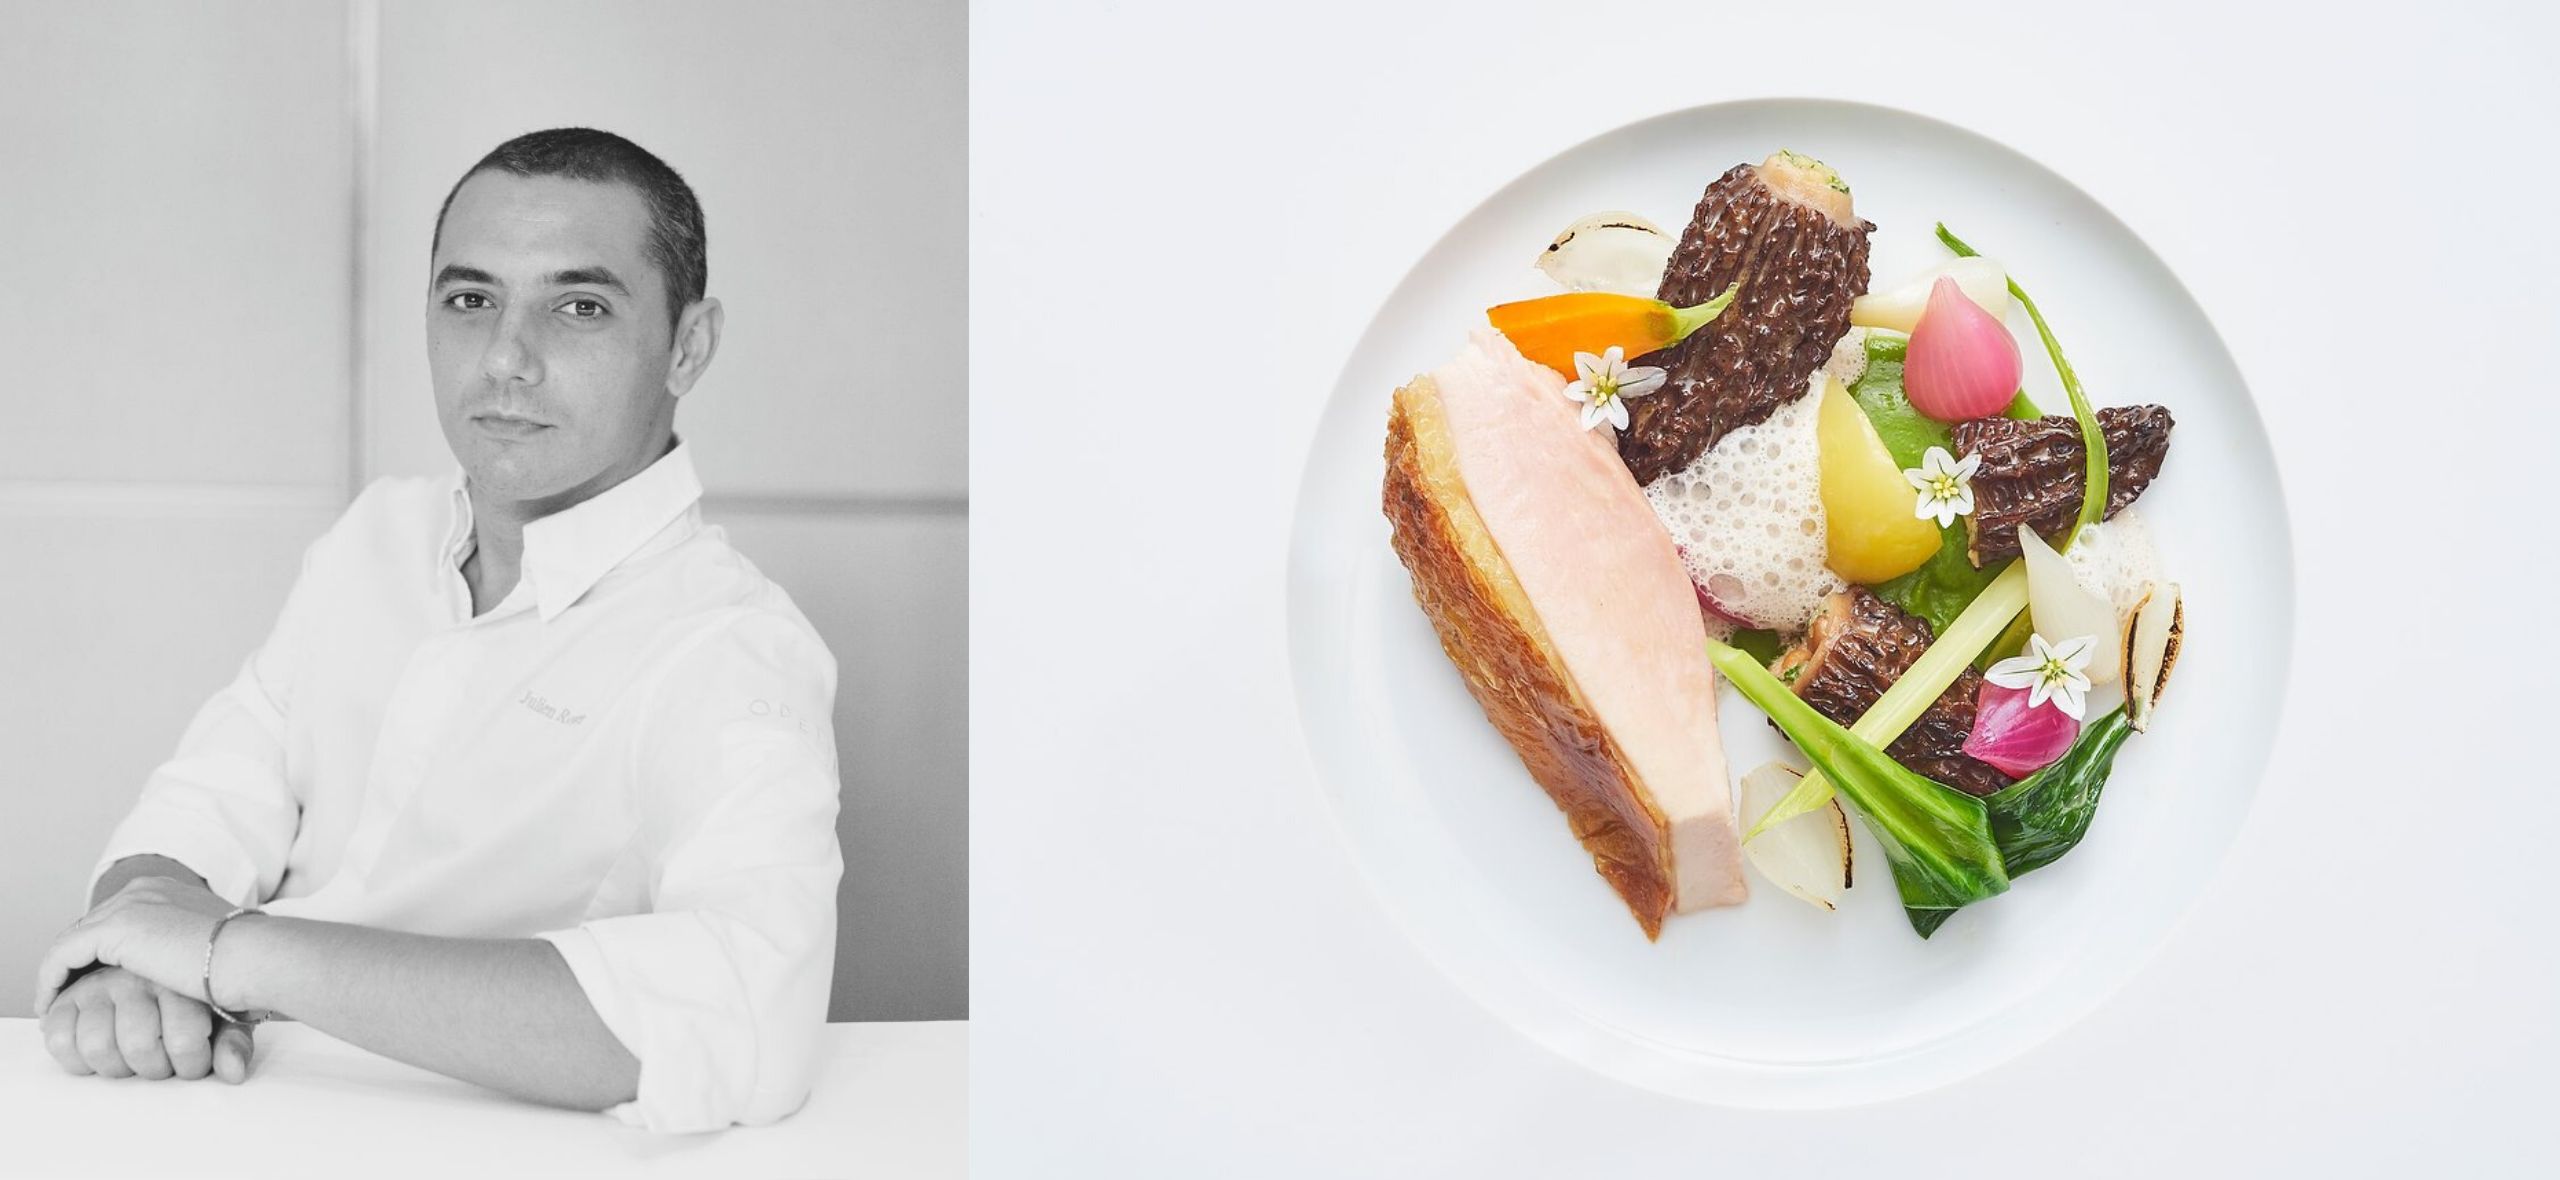 Asia's 50 Best Restaurants 2020: The Results Are In